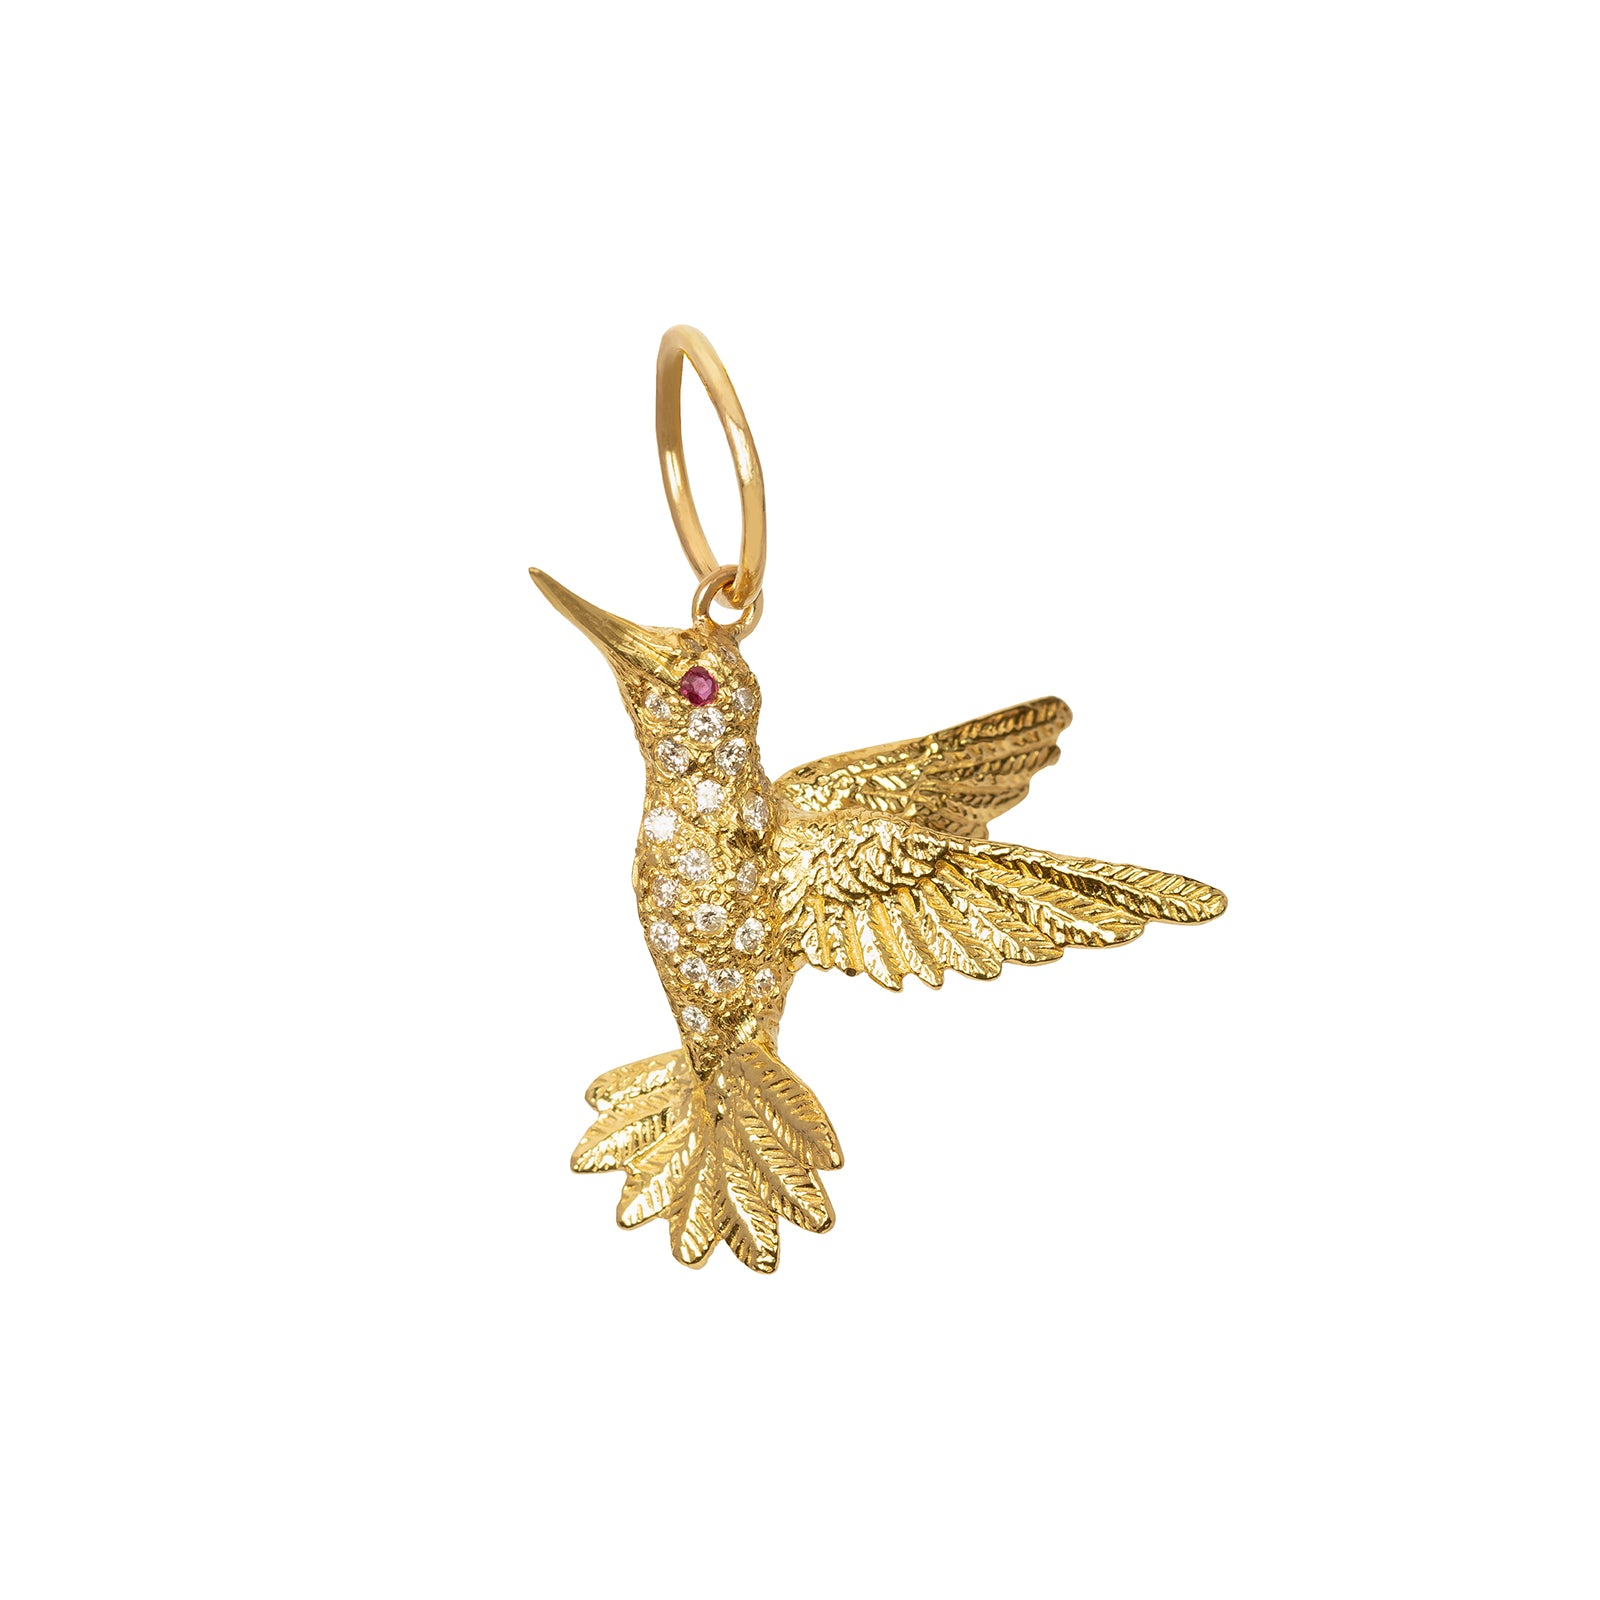 Jenna Blake Hummingbird Pendant - Charms & Pendants - Broken English Jewelry